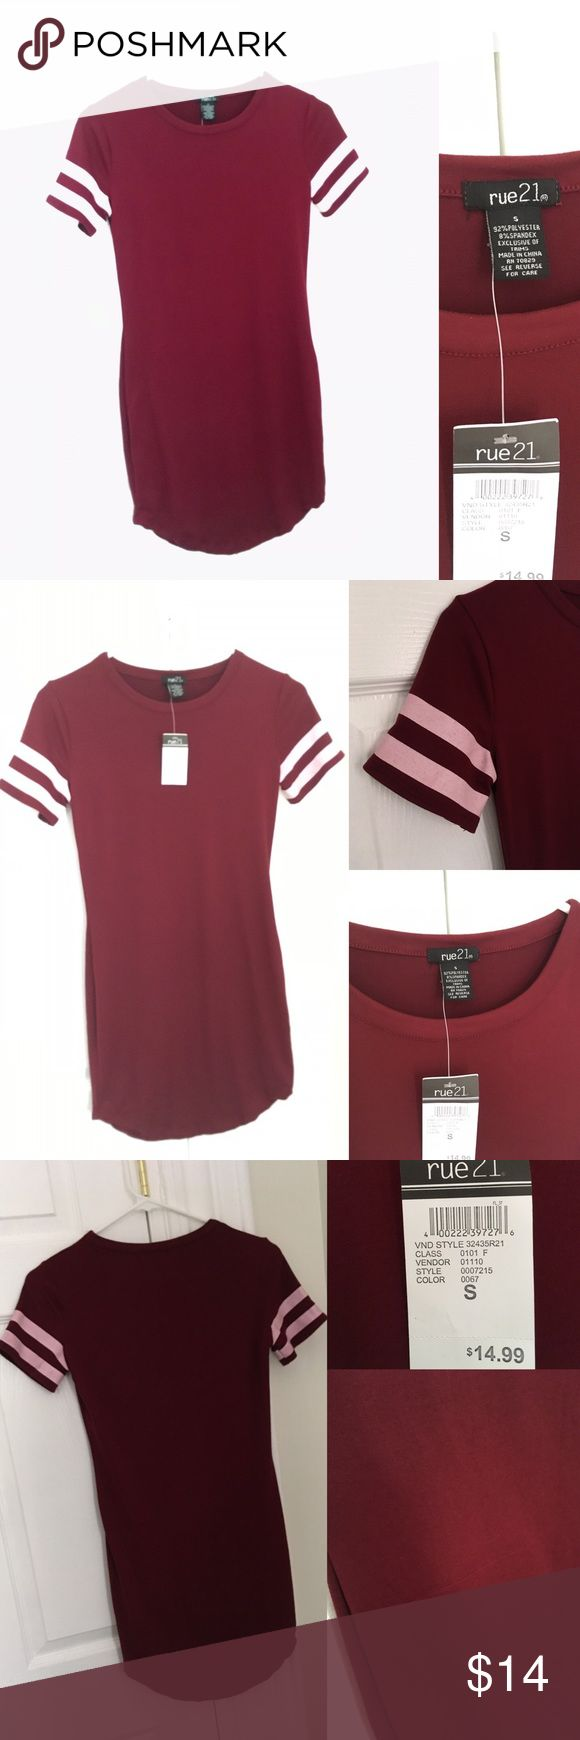 Soft Red Tunic Dress Comfy casual red-maroon tunic/shirt dress with white striped accent short sleeves. Fitted/skin tight stretchy material. Very soft and comfy, brand new, never worn. Noticed a slight run in the right front side of the fabric- doesn't affect look or feel, hardly noticeable. 92% polyester 8% spandex. Rue21 Tops Tunics